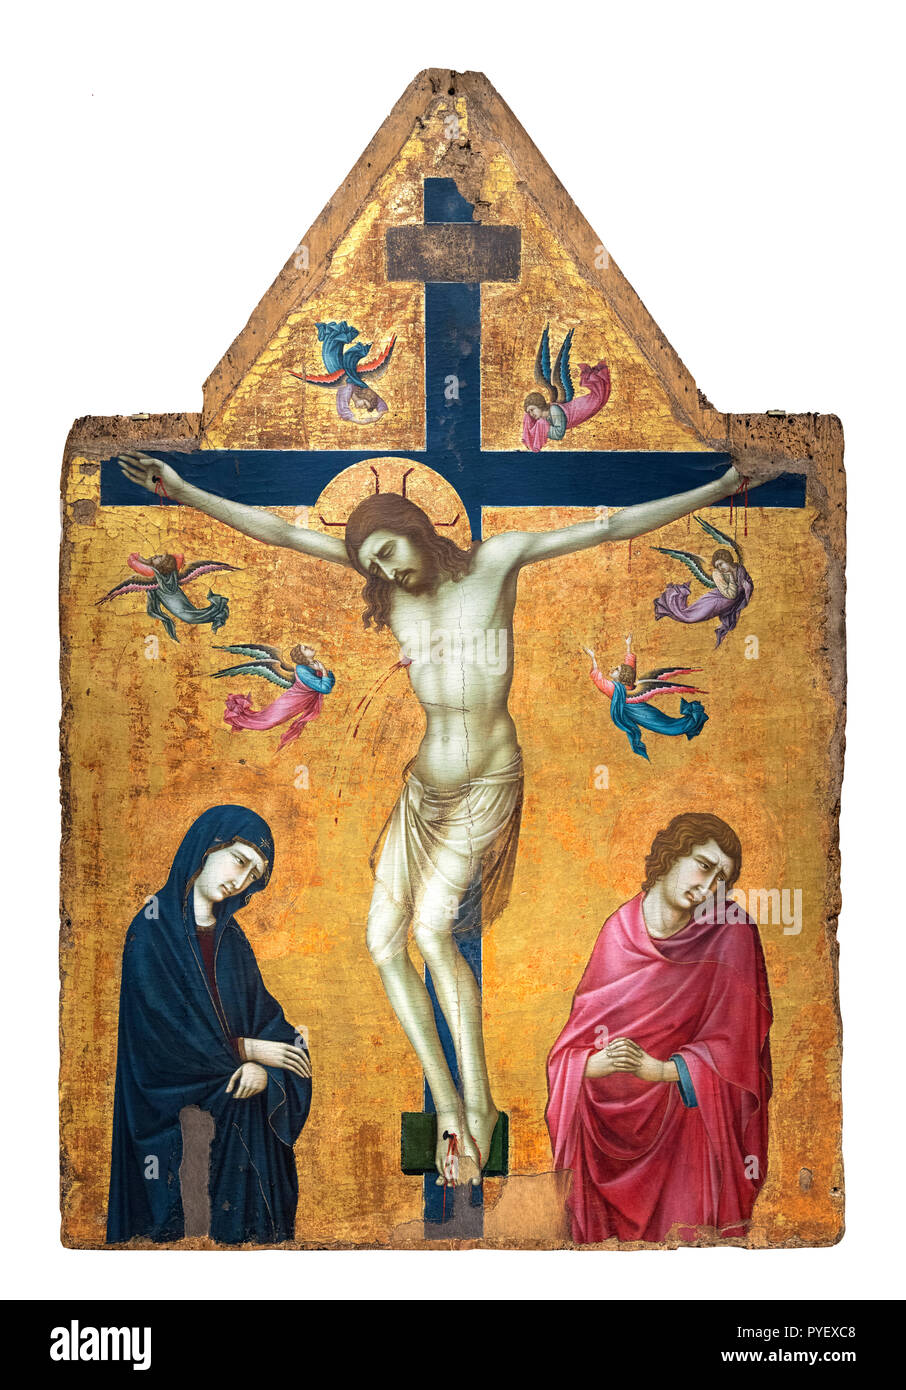 The Crucifixion with the Virgin, Saint John and Angels by Ugolino di Nerio (c.1280-1349), tempera and gold on panel Stock Photo